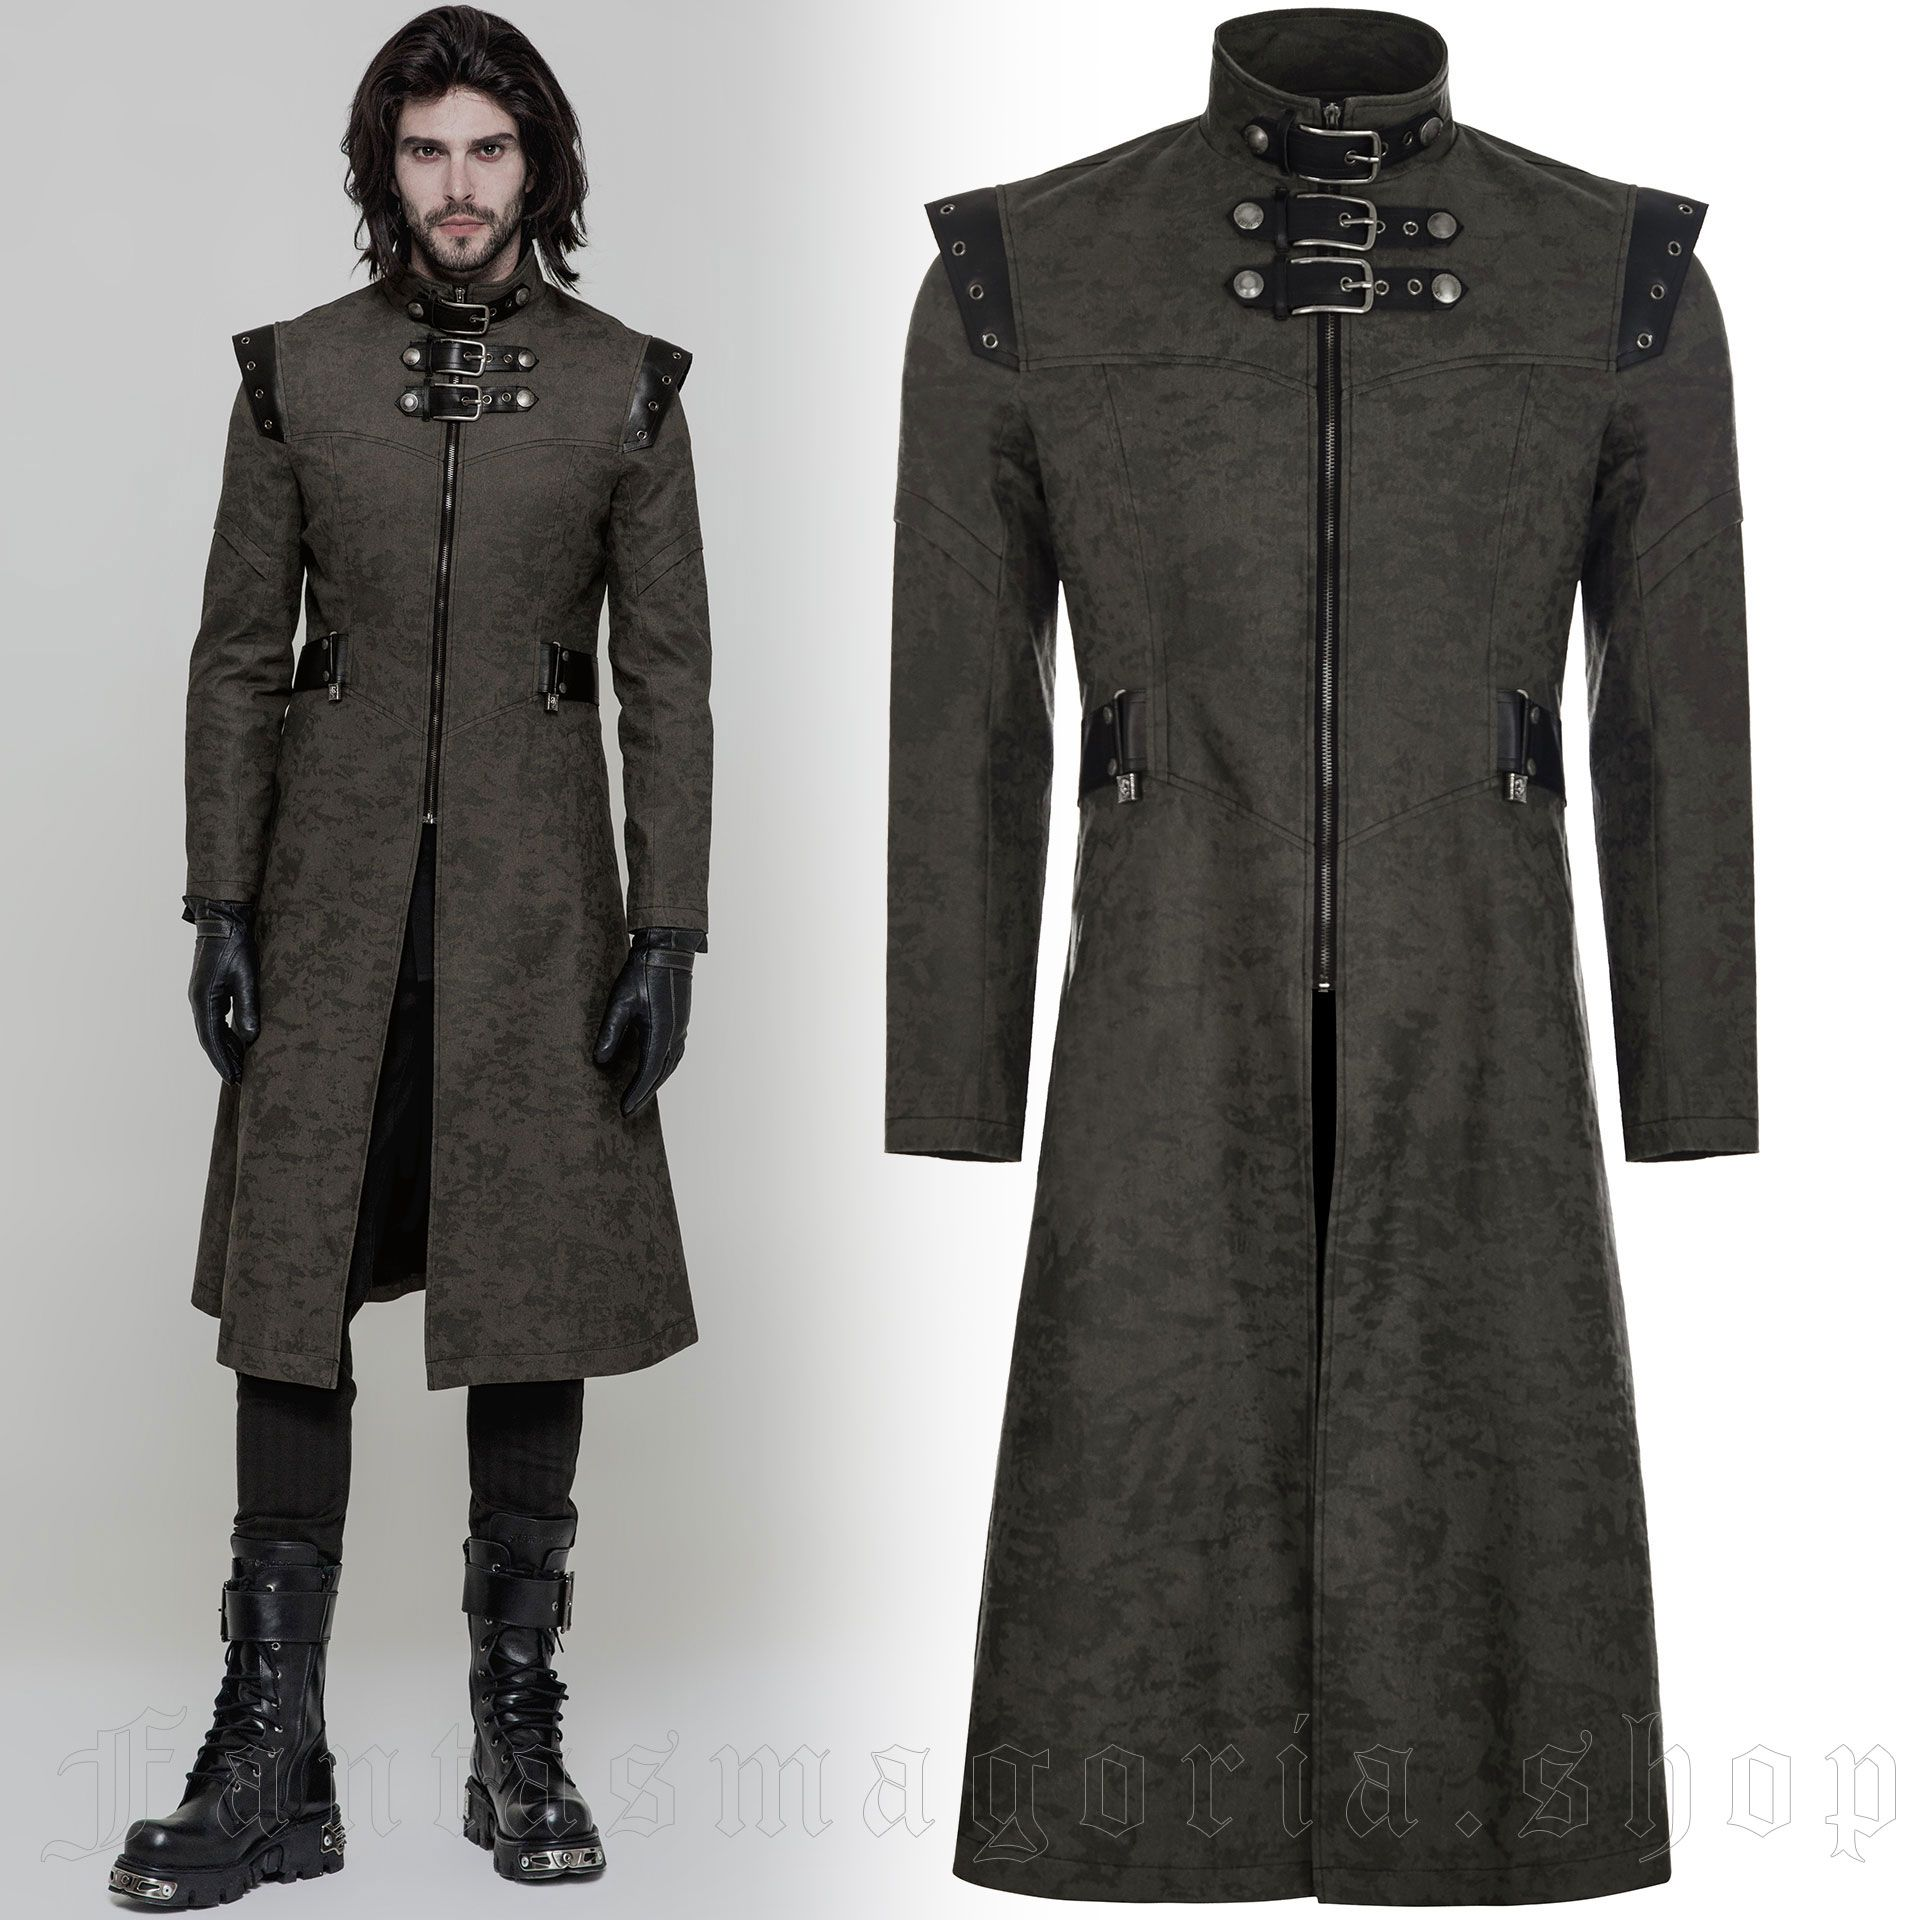 men's The Smog Coat by PUNK RAVE brand, code: WY-854/GR